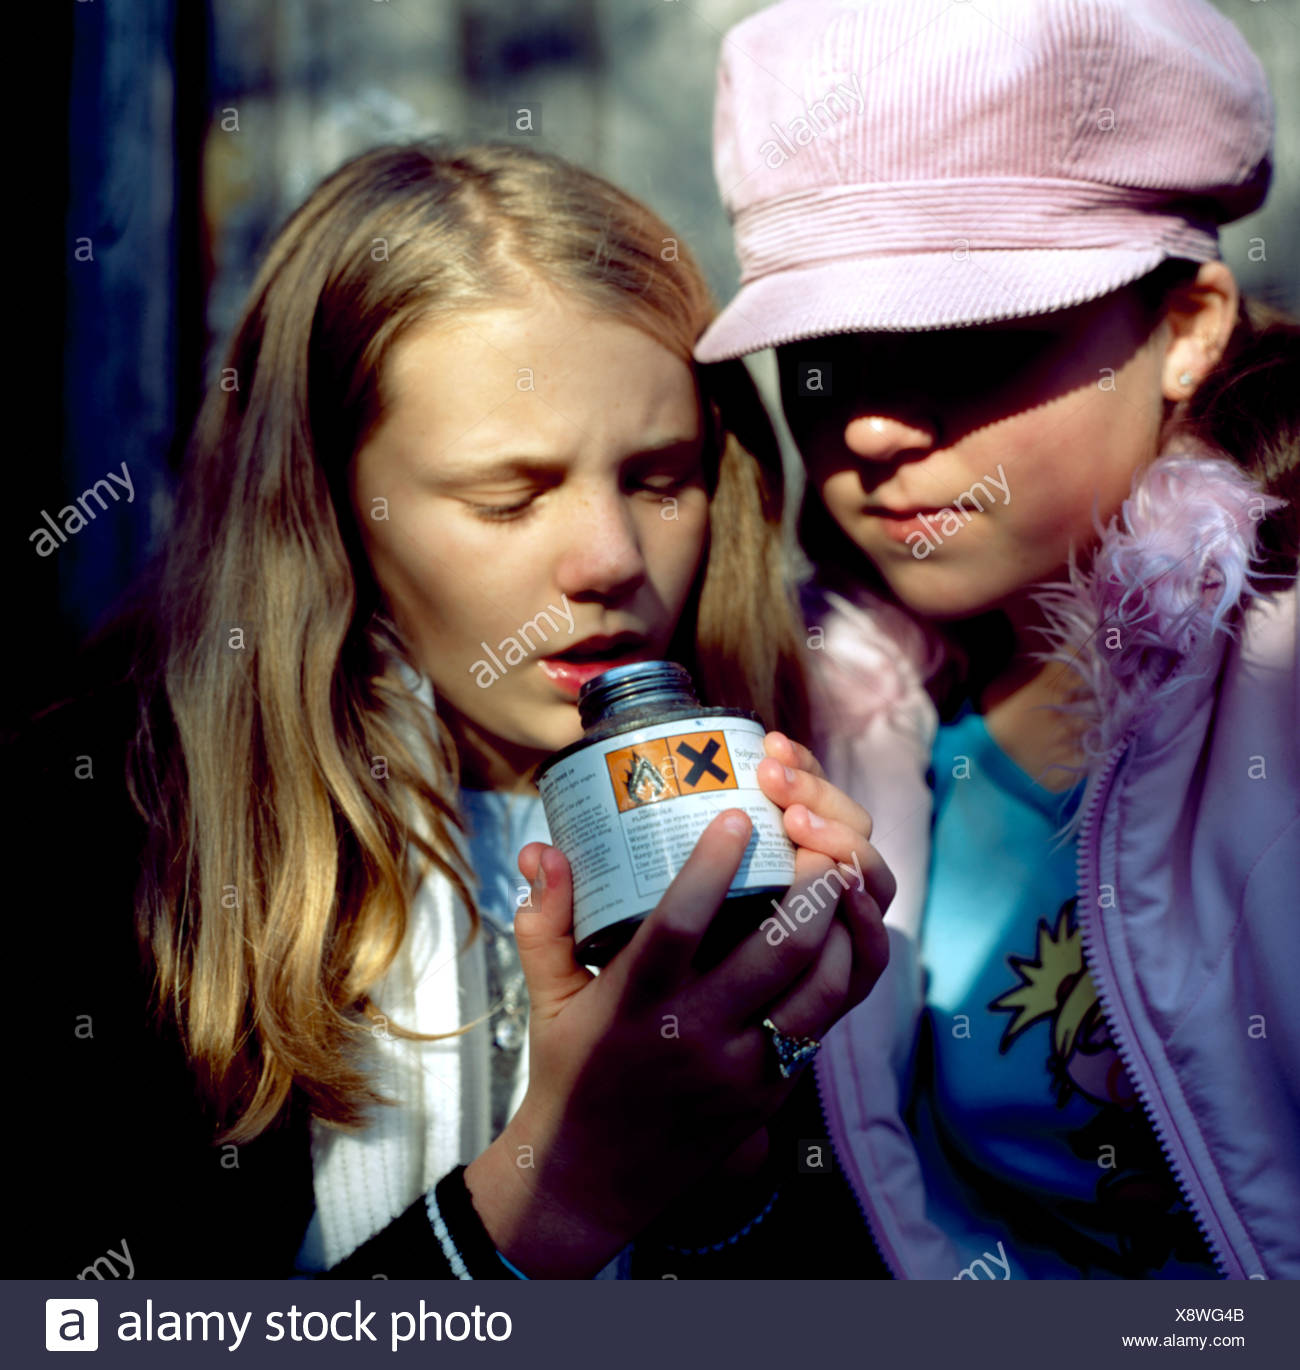 solvent-abuse-two-girls-sniffing-can-of-